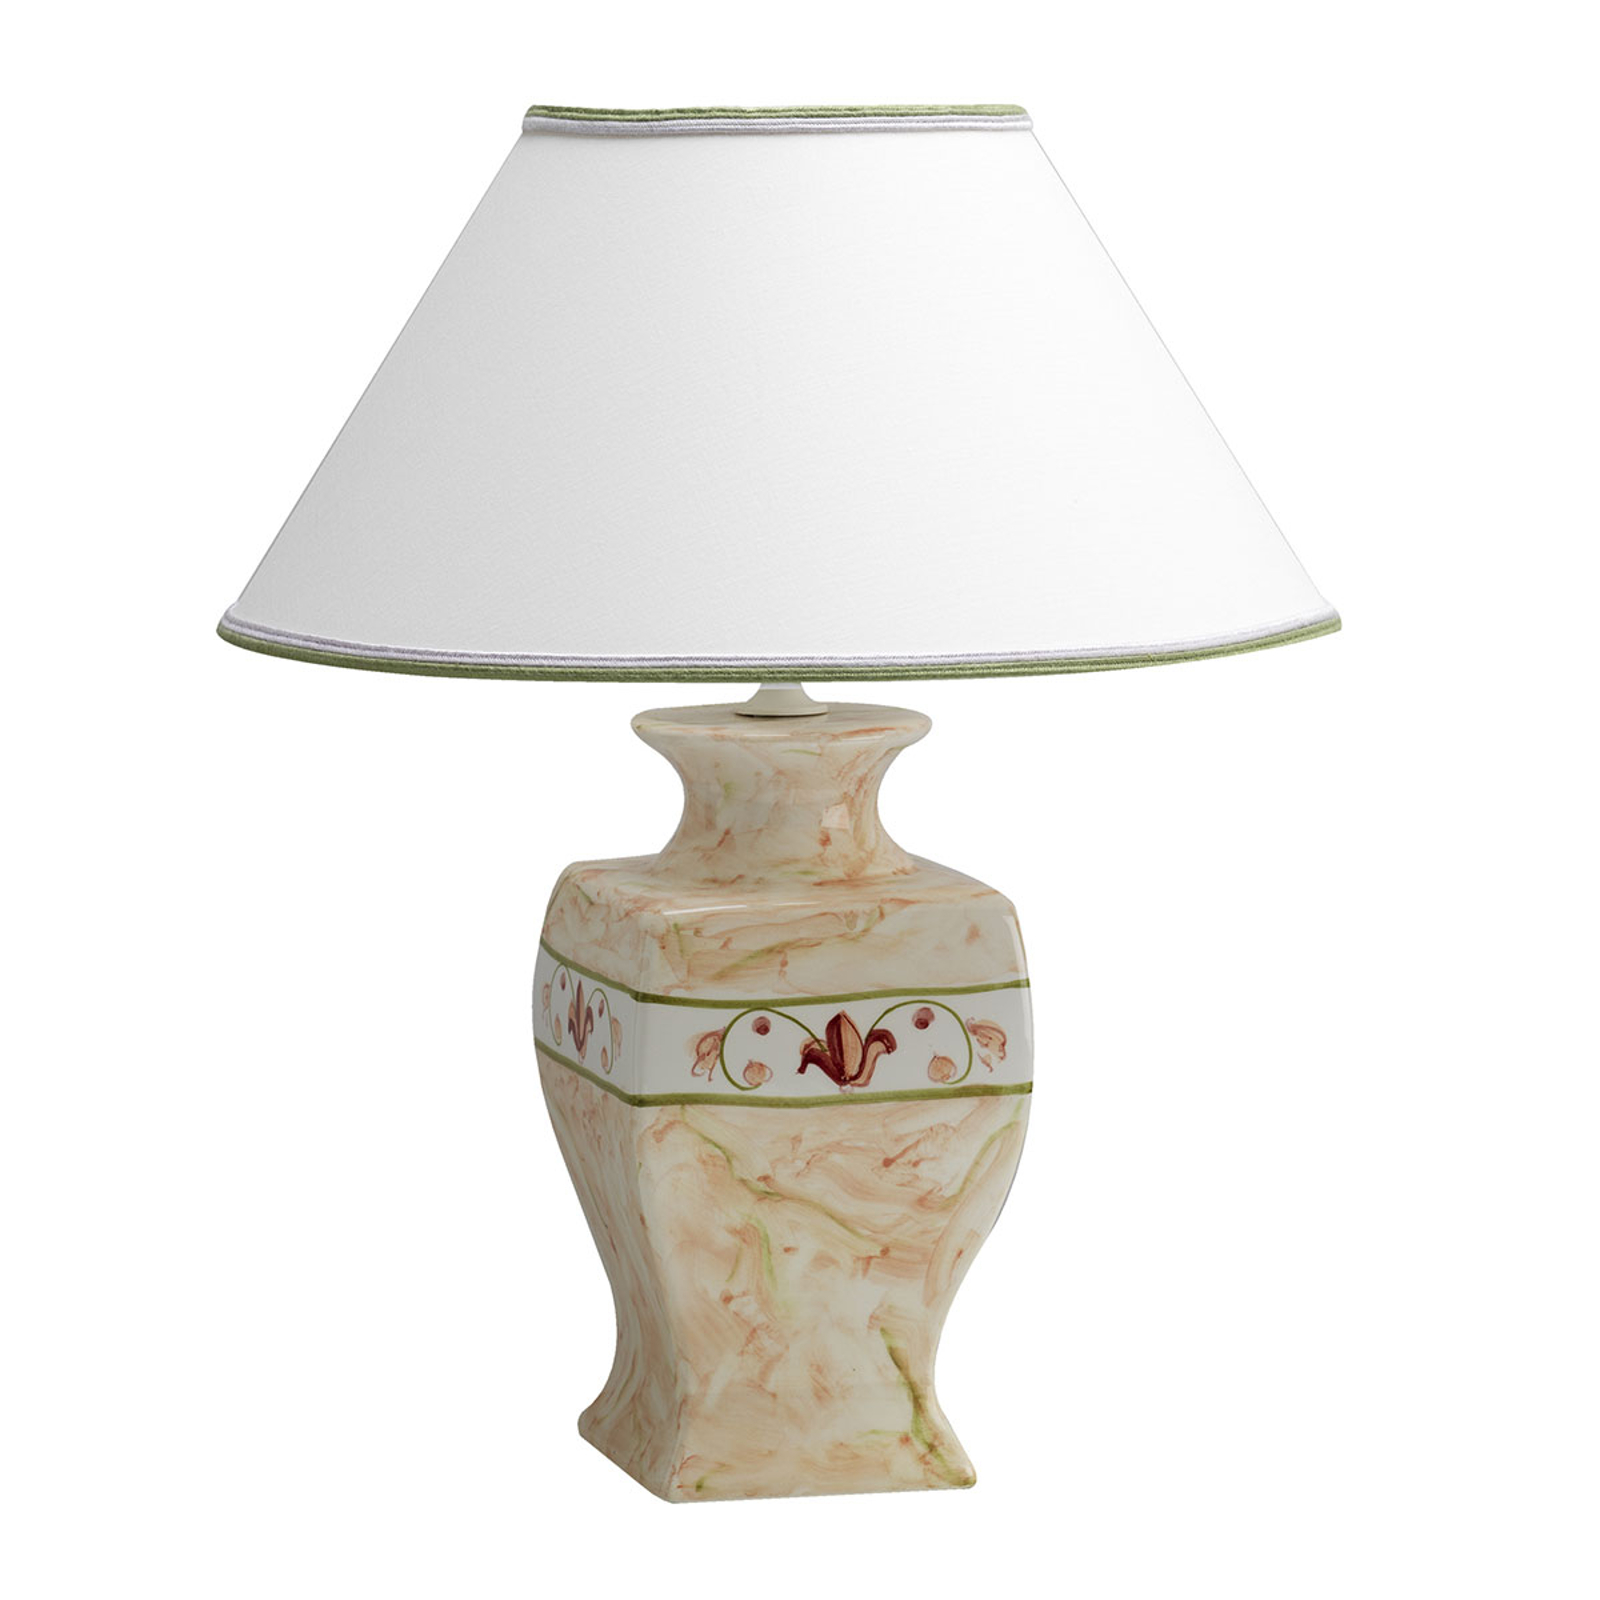 Ceramic table lamp Marmorino with fabric lampshade_3046103_1